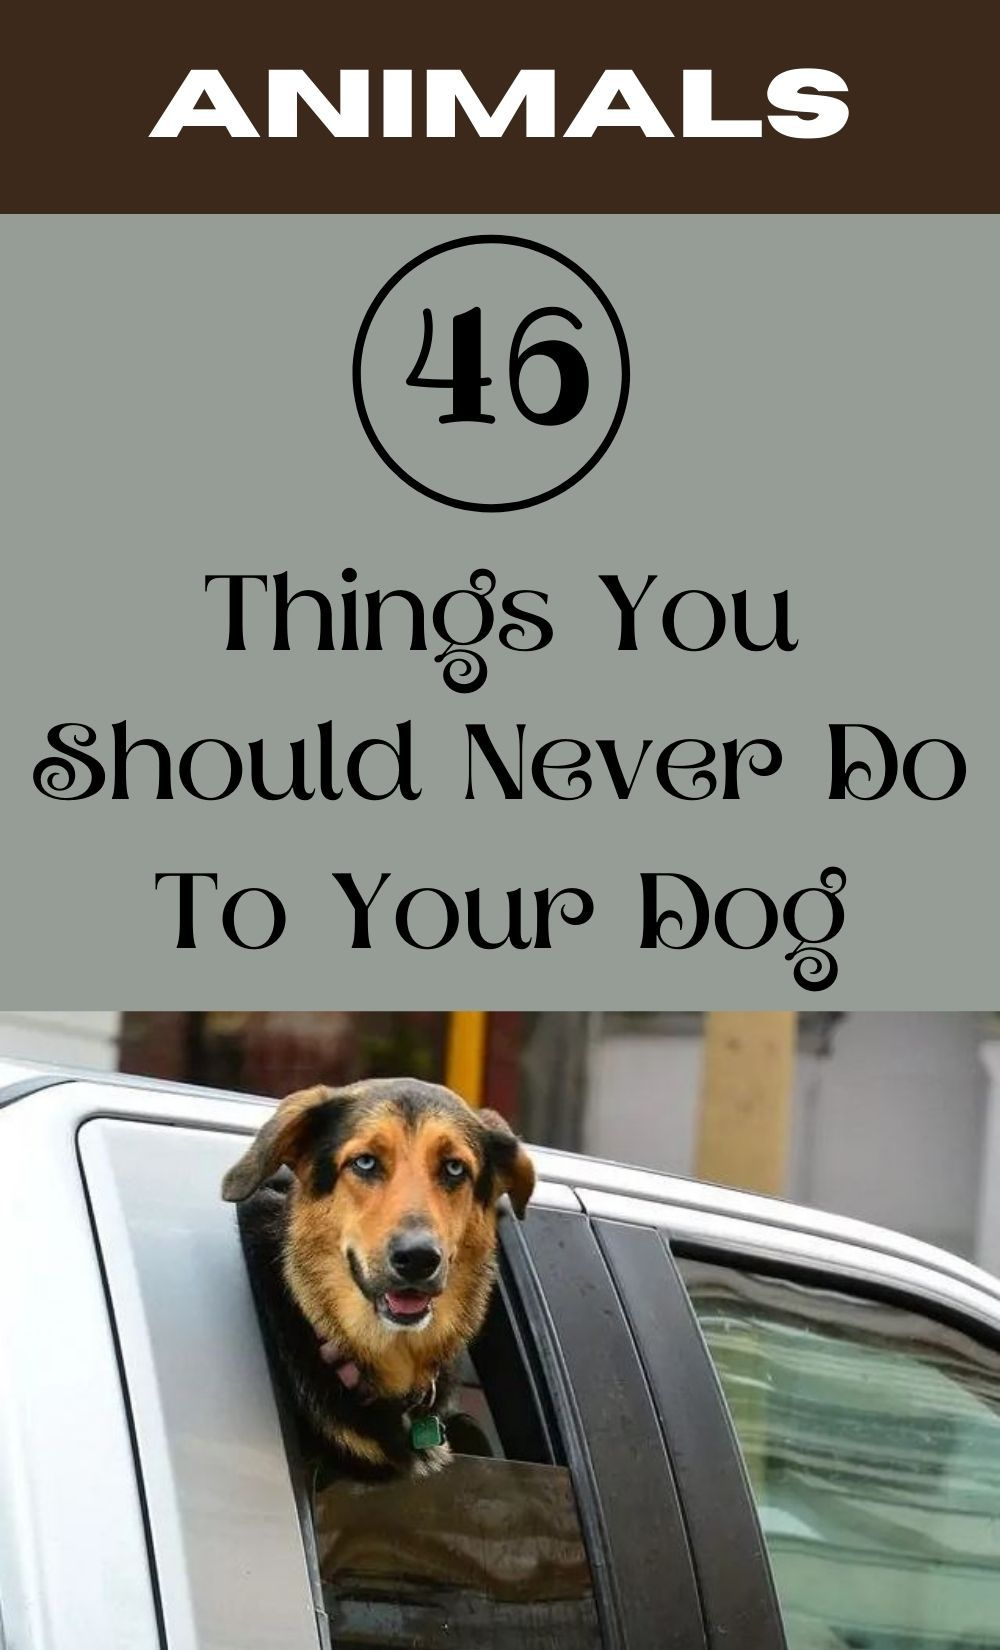 If You Own A Dog Here Are 46 Things You Should Never To Do Them Ever Pimple Solution Dogs Baby Swings